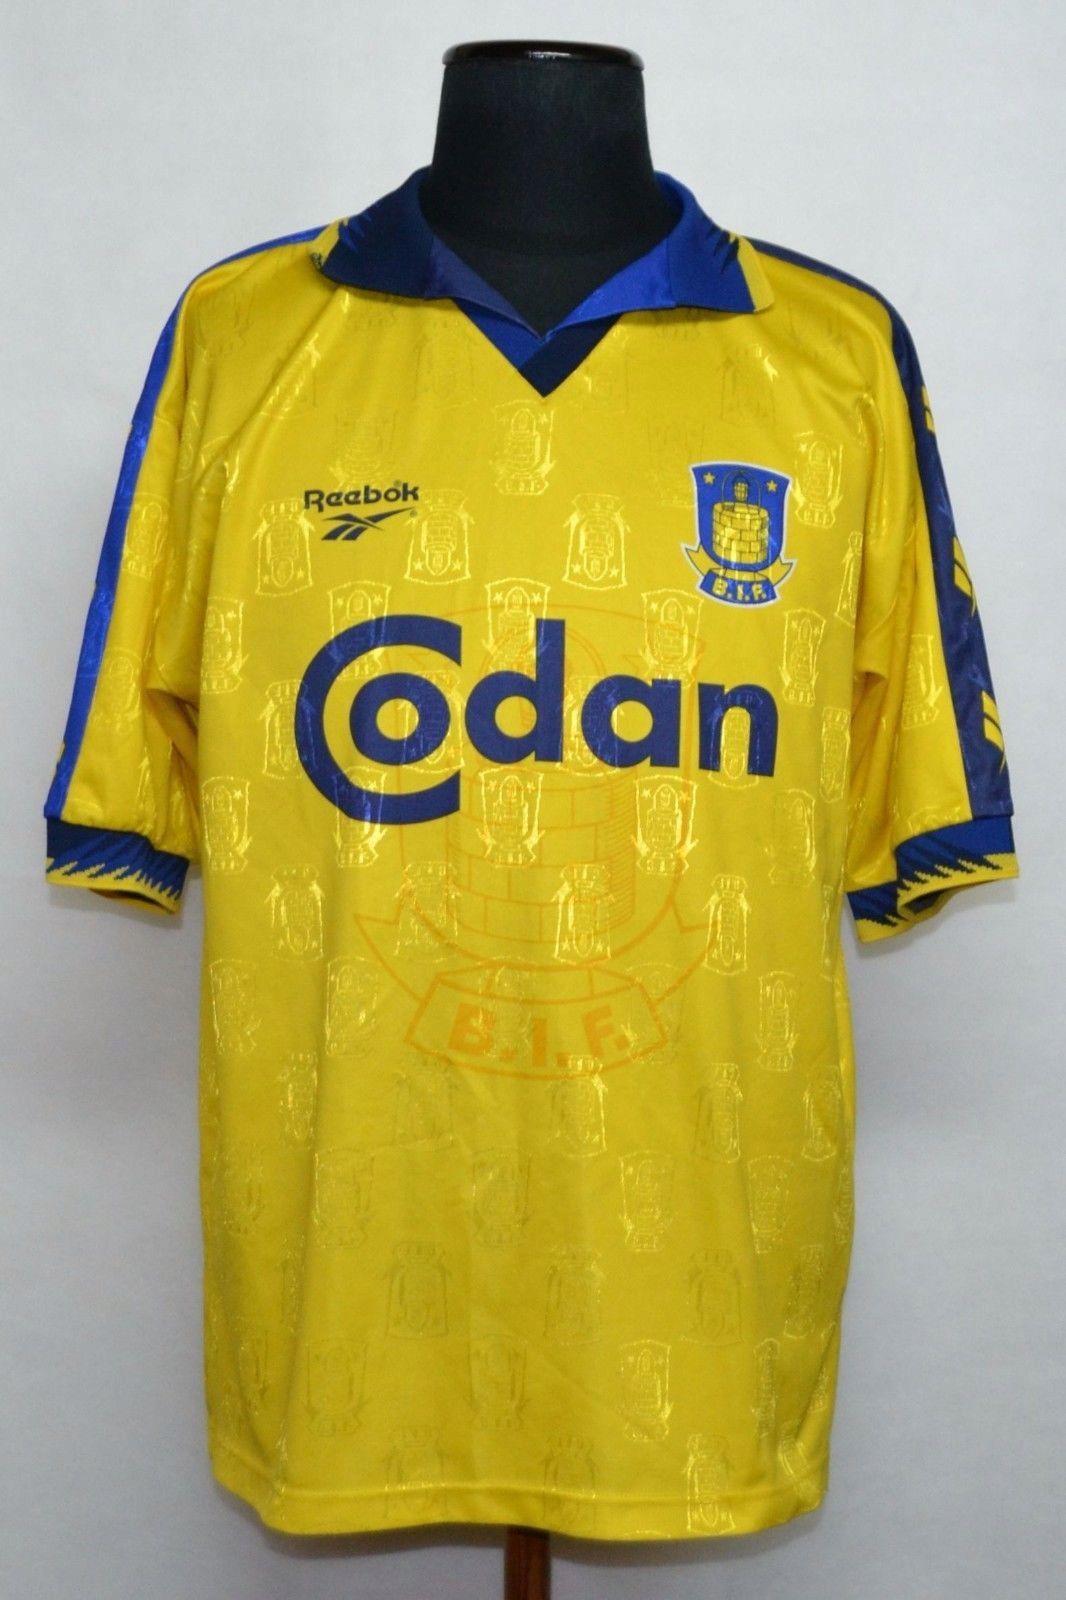 BRONDBY Brndby 1997 / 1998 Football Shirt.WIDZEW